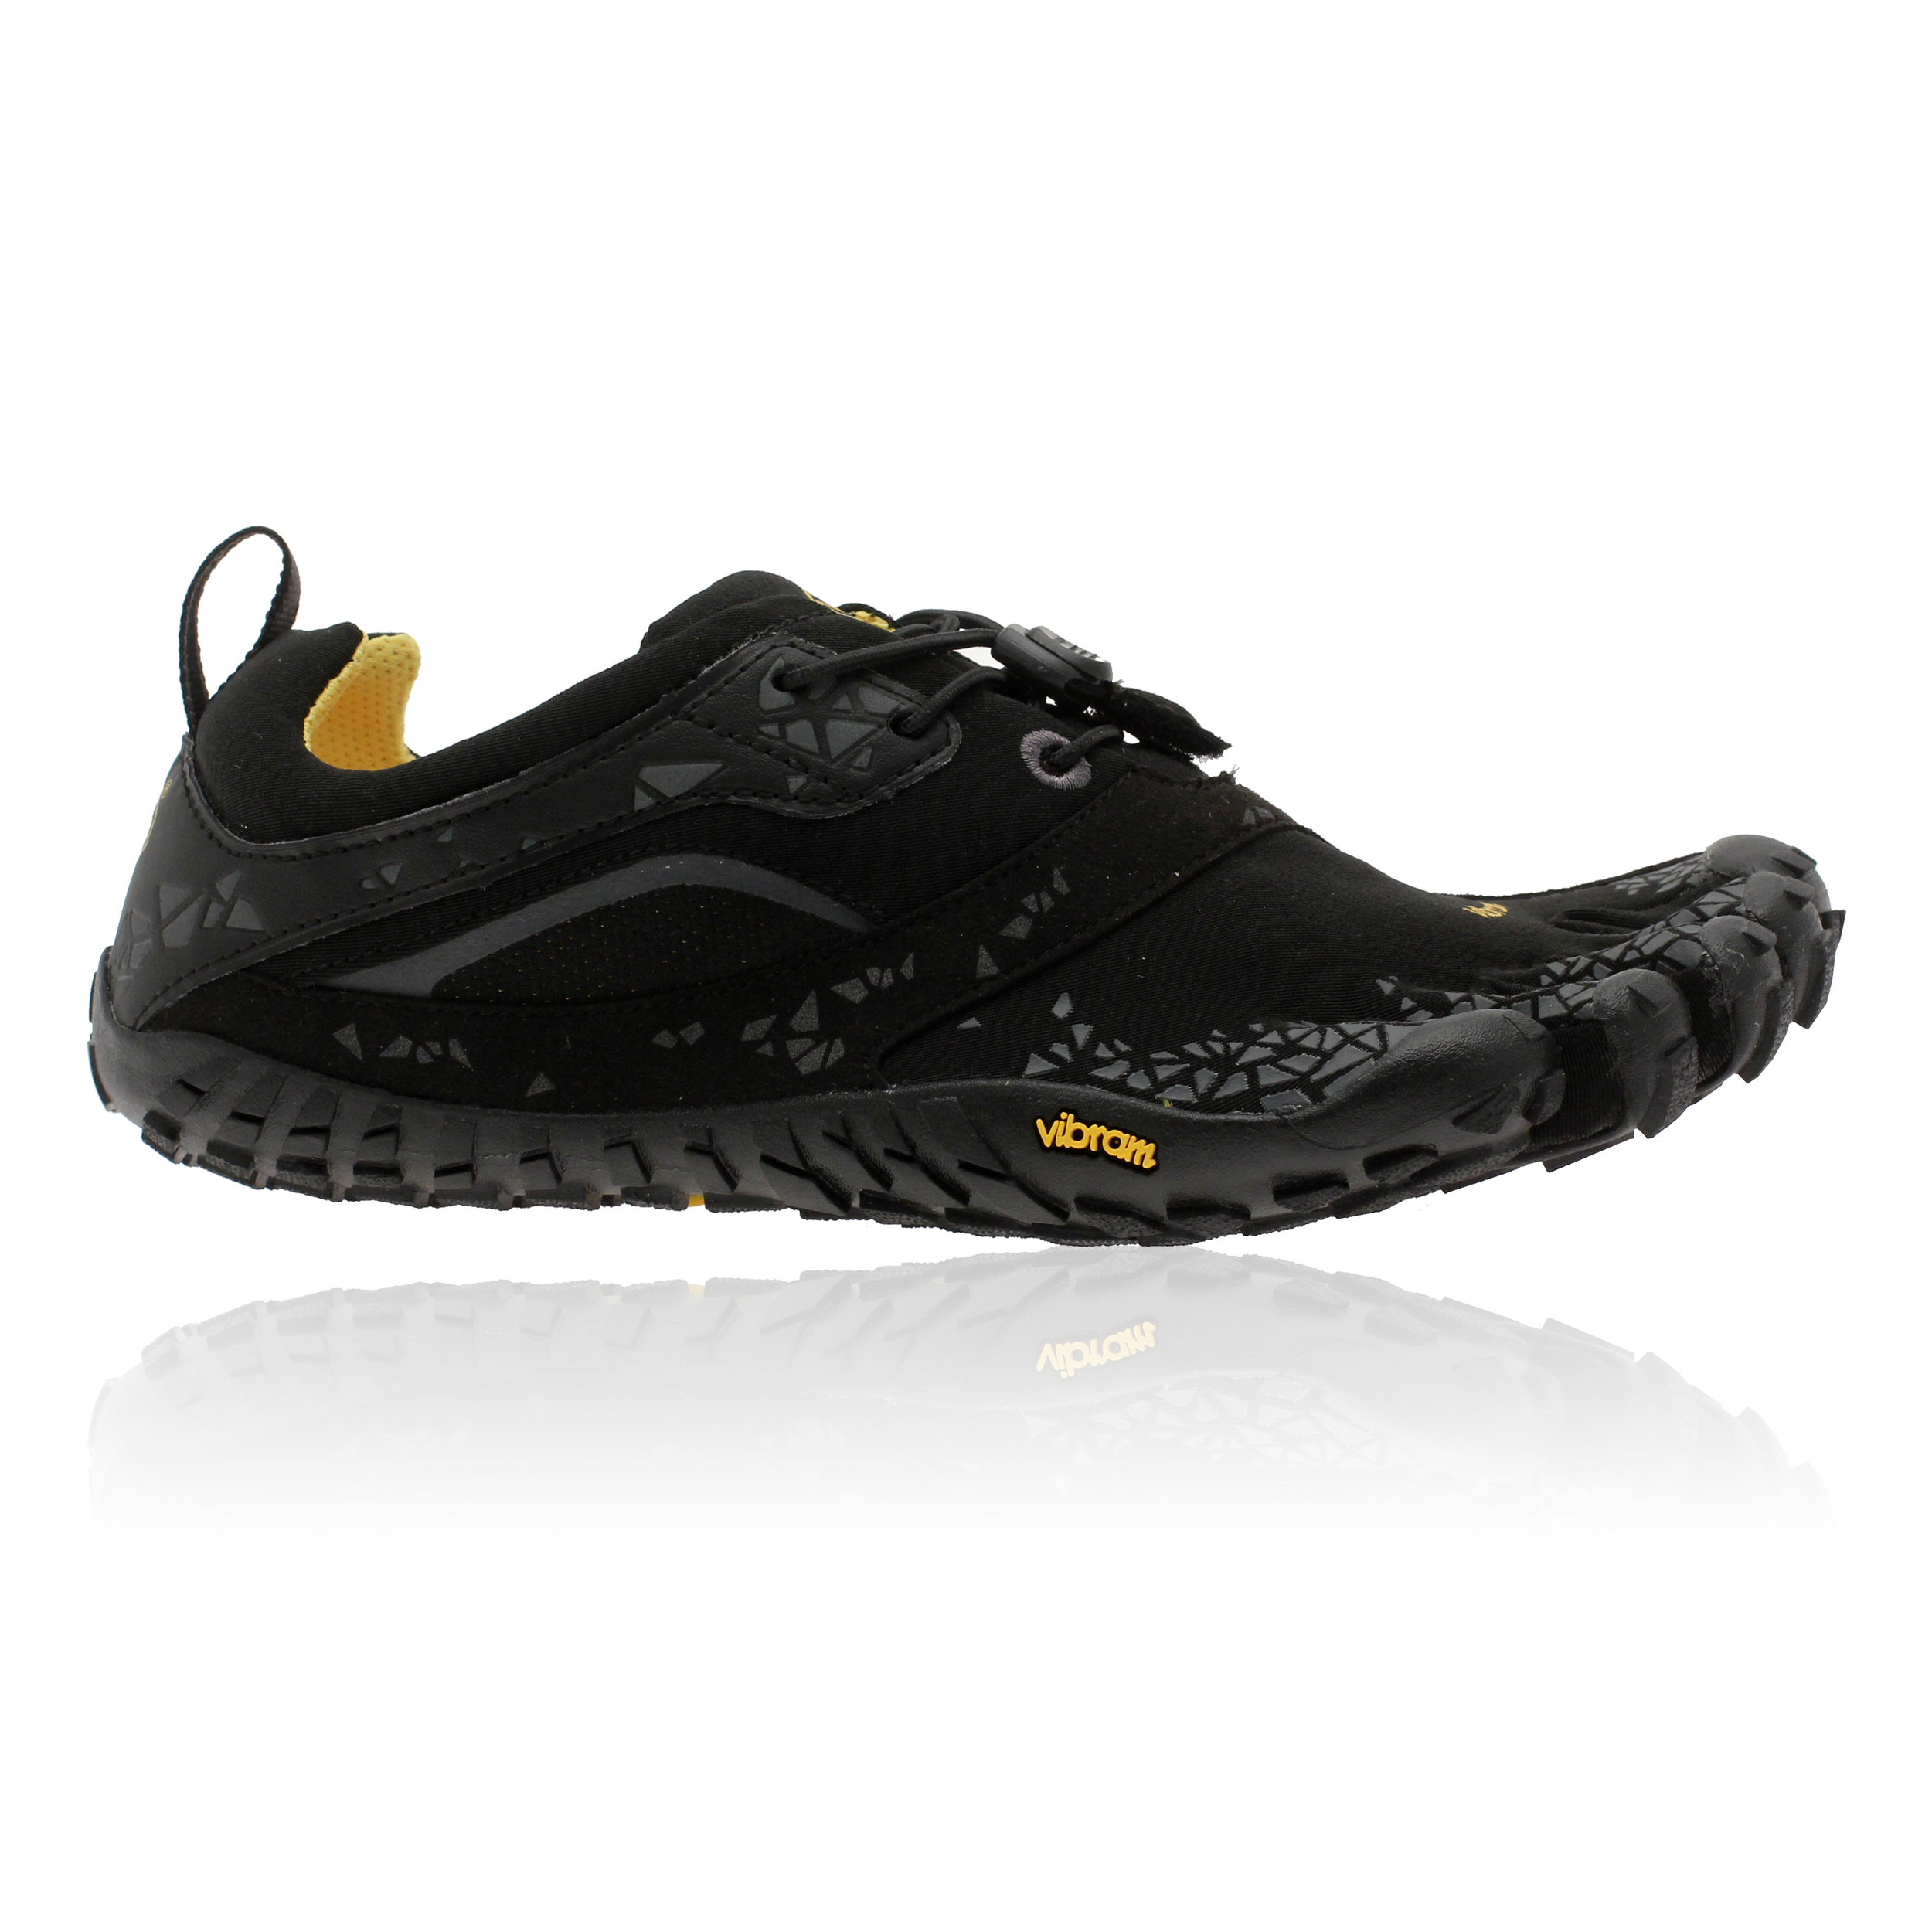 Vibram Black And Yellow Shoes